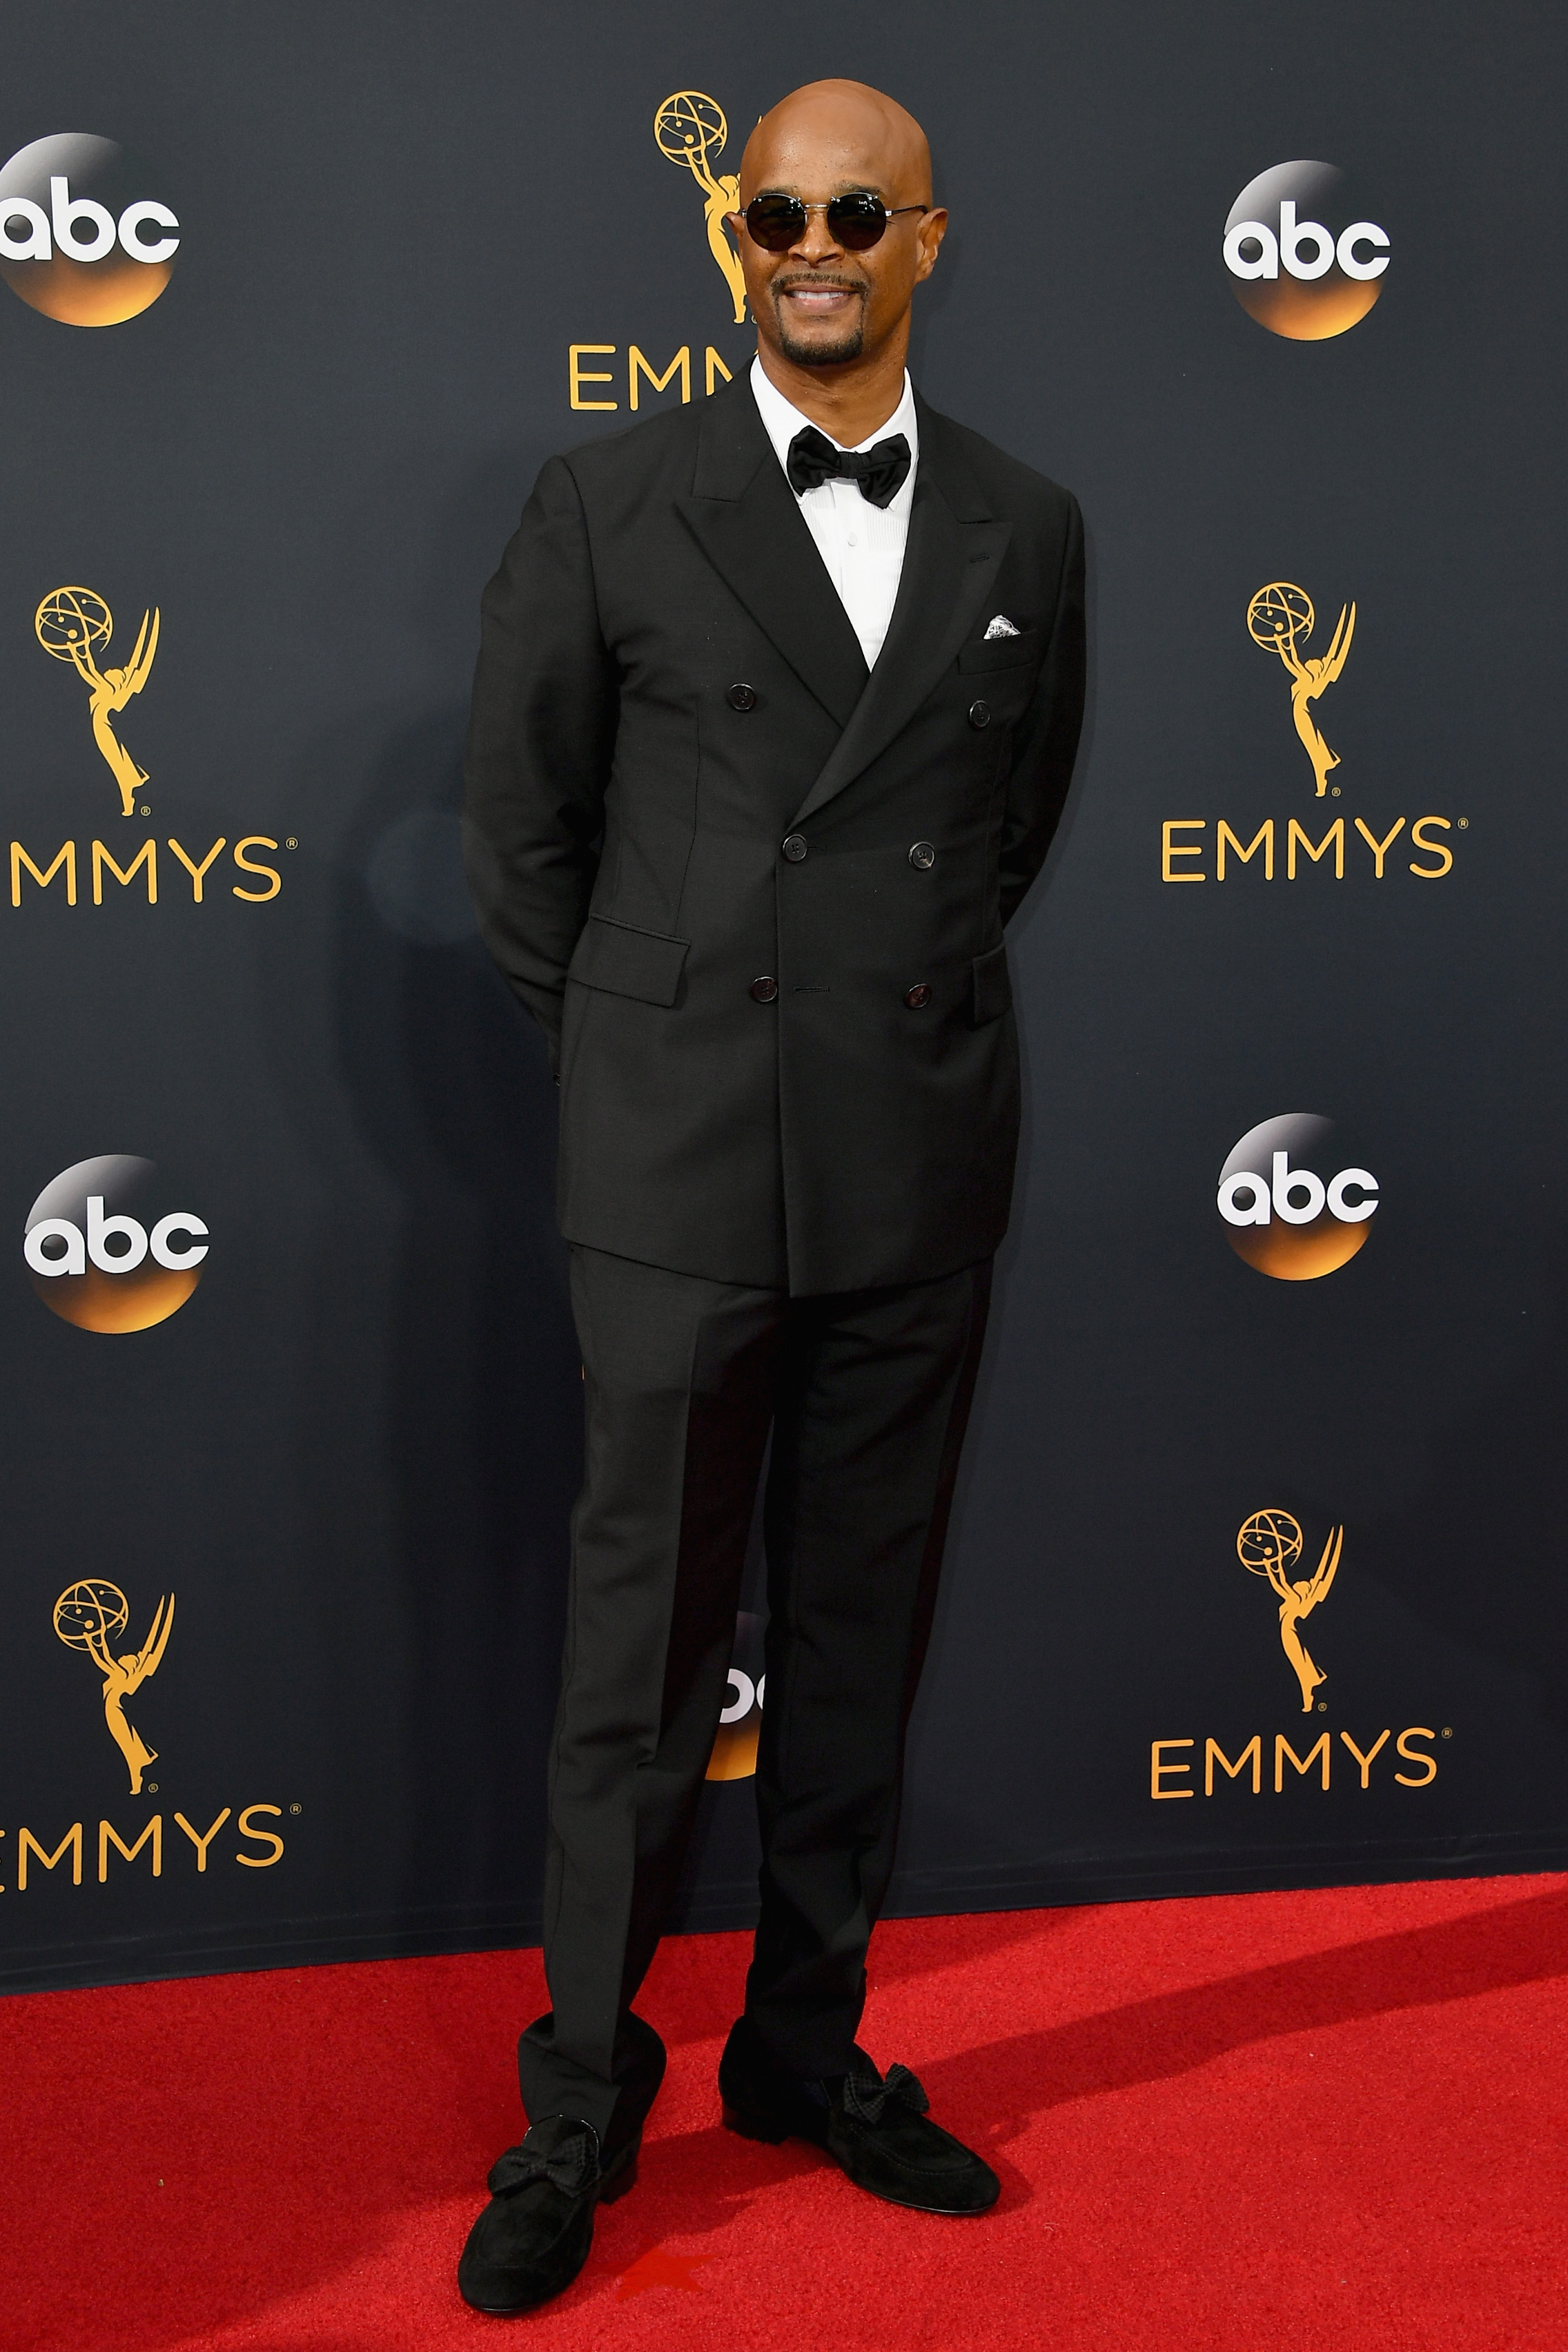 Damon Wayons arrives at the 68th Annual Primetime Emmy Awards at Microsoft Theater on Sept. 18, 2016 in Los Angeles.